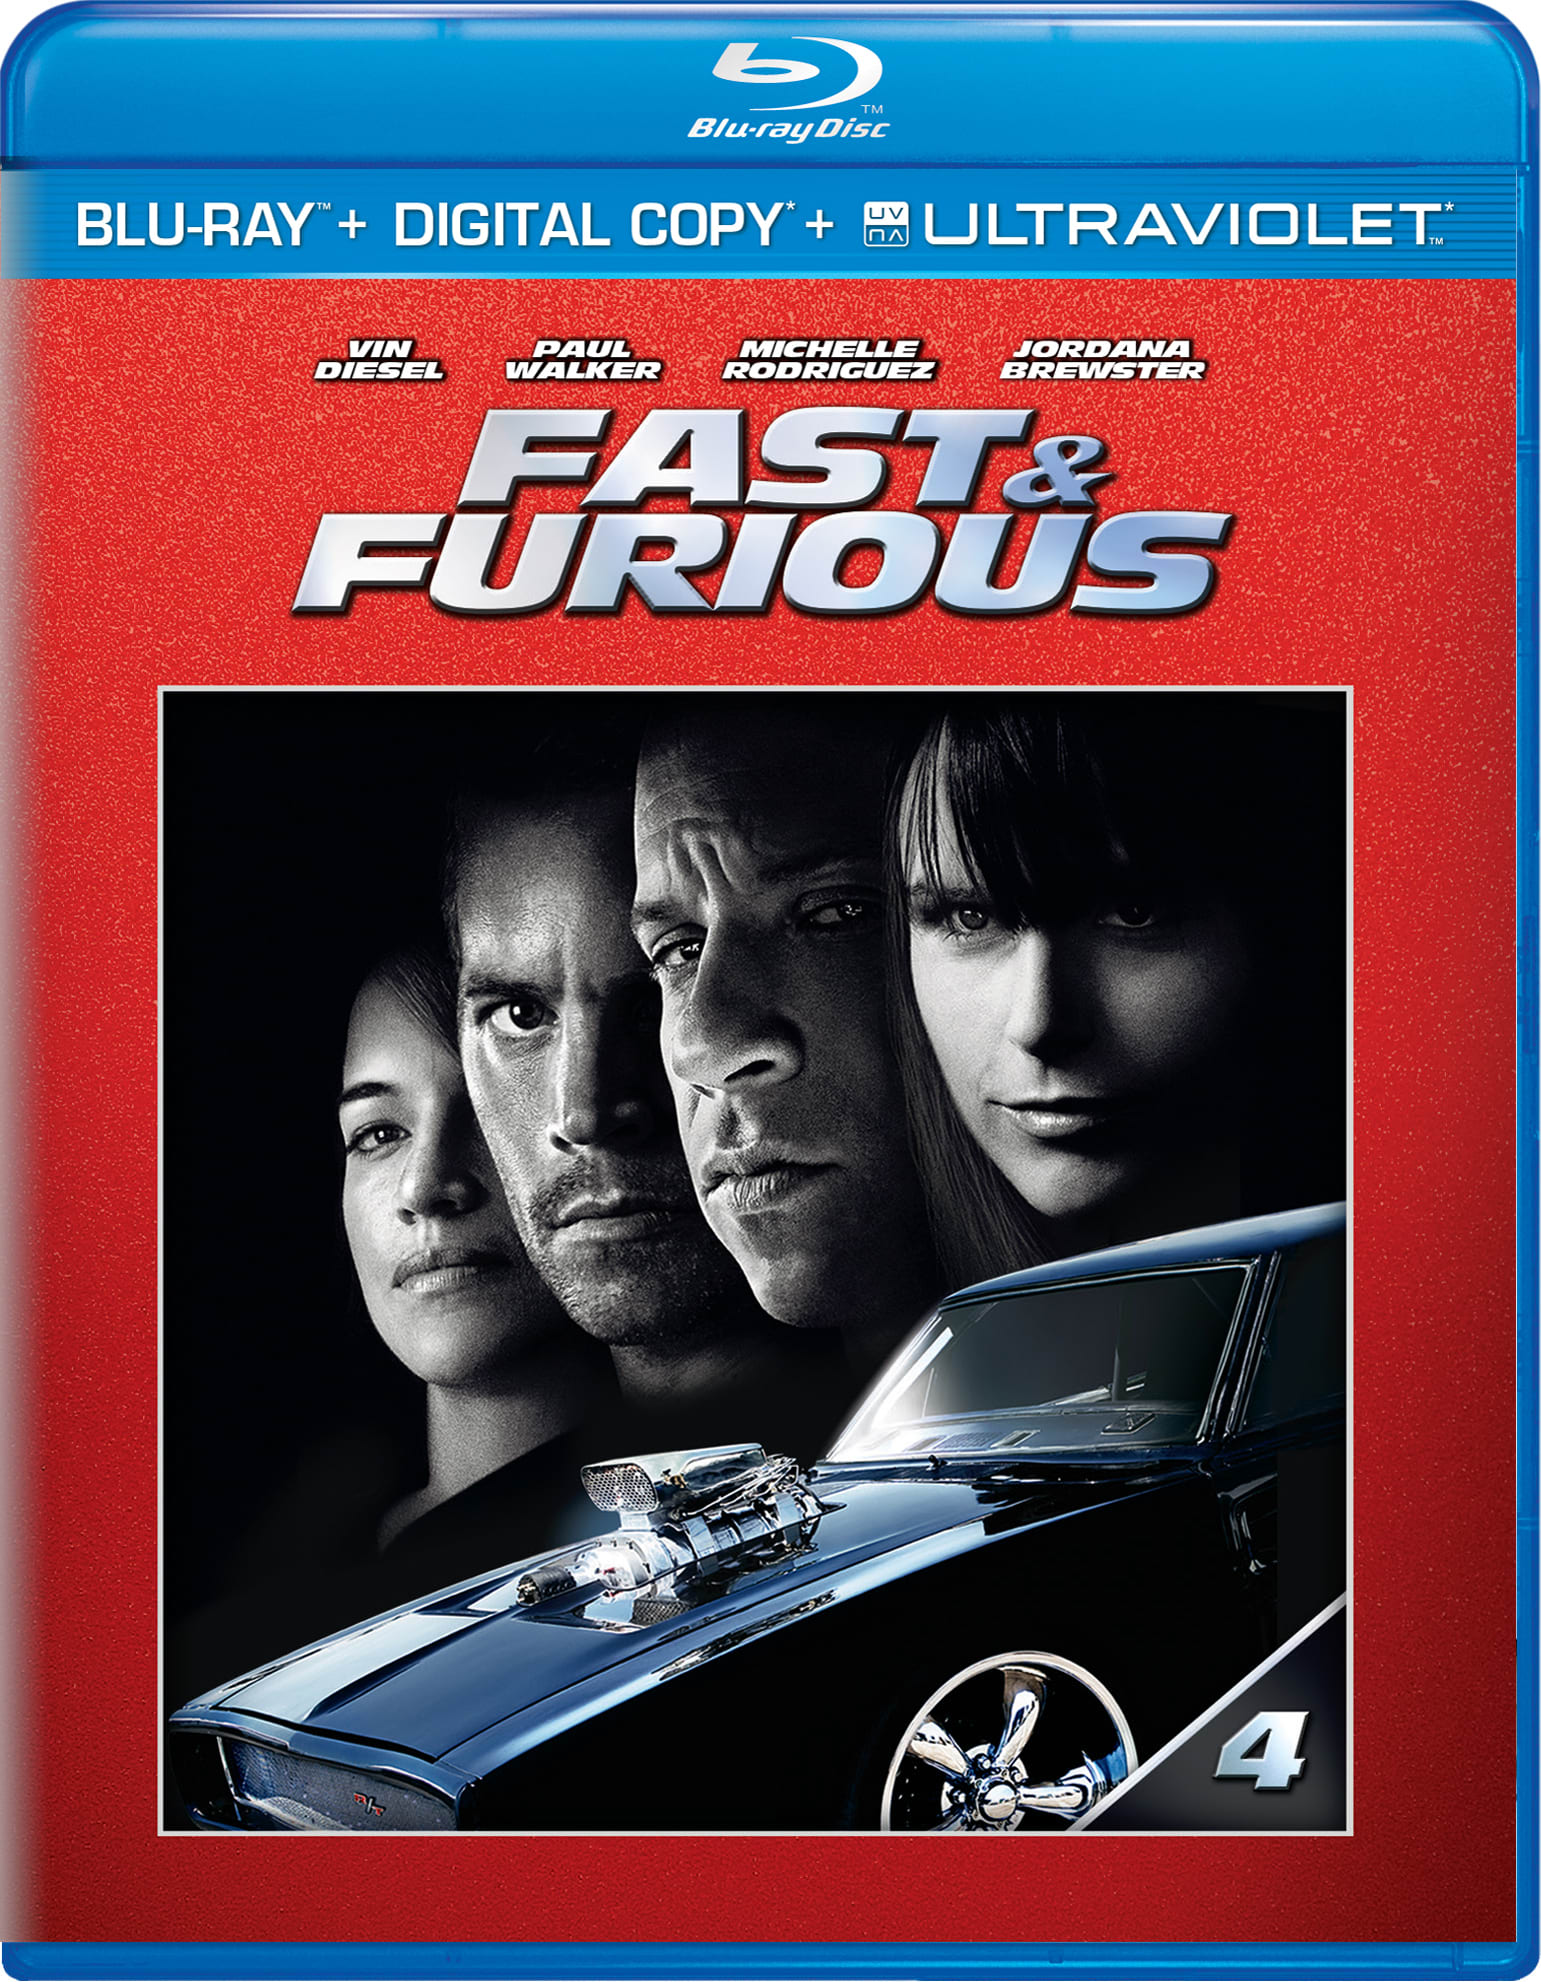 Fast & Furious (Ultraviolet) [Blu-ray]